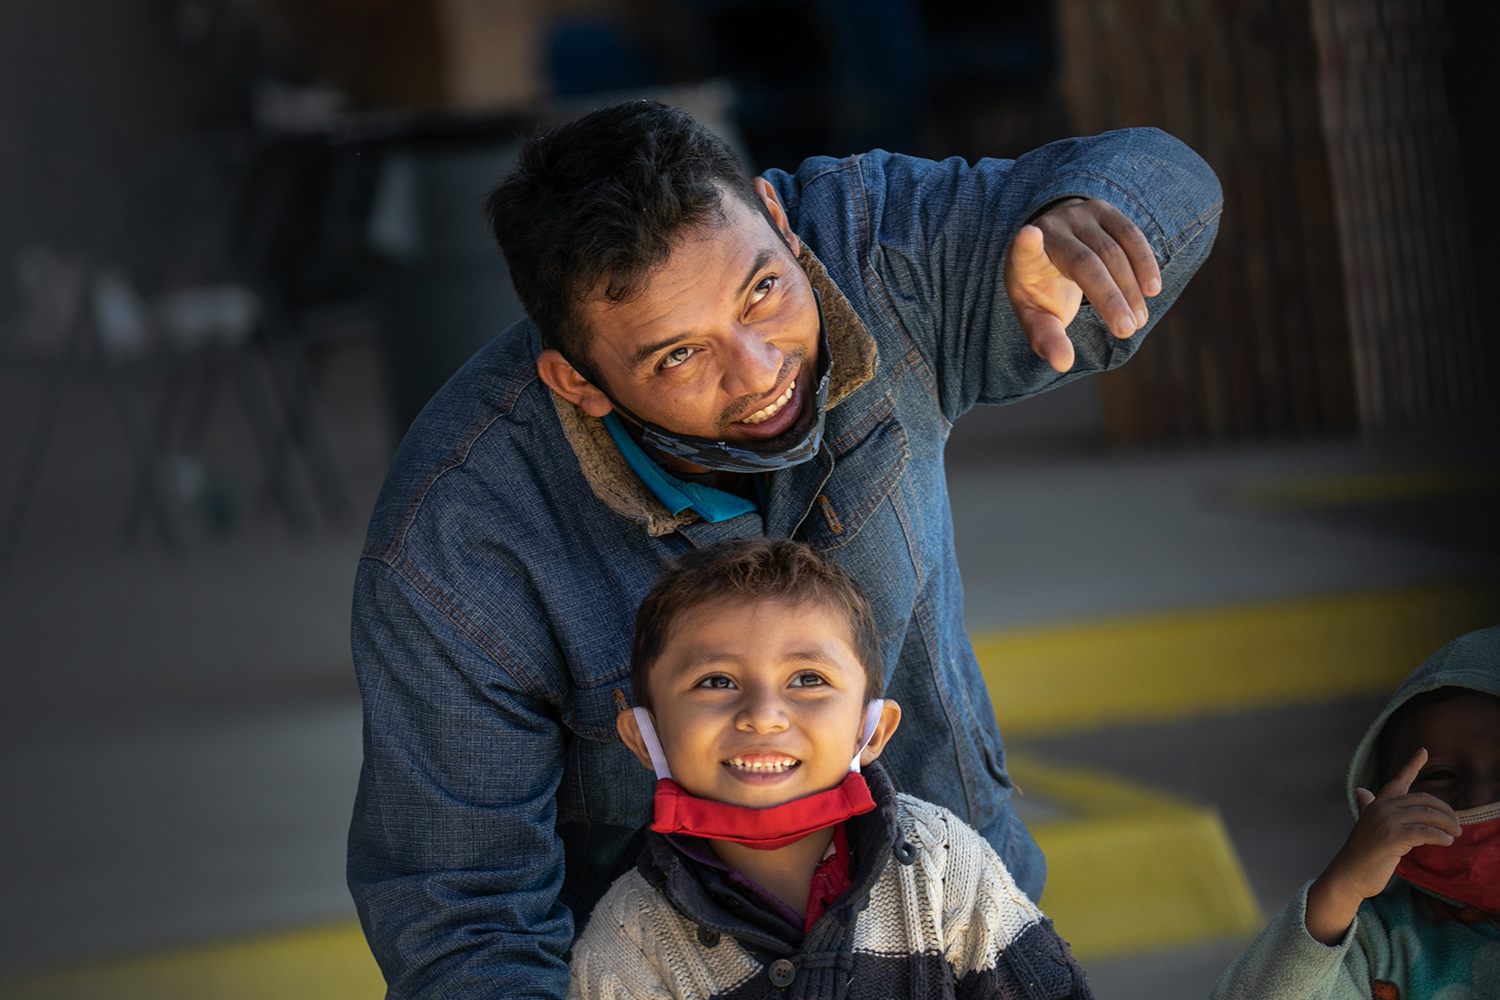 A father points out an outbound bus to his son after they were released by U.S. immigration authorities at a bus station in Brownsville, Texas, on Feb. 24. Immigration officials have begun releasing detained asylum seekers for onward travel within the U.S. pending their asylum court cases. John Moore/Getty Images